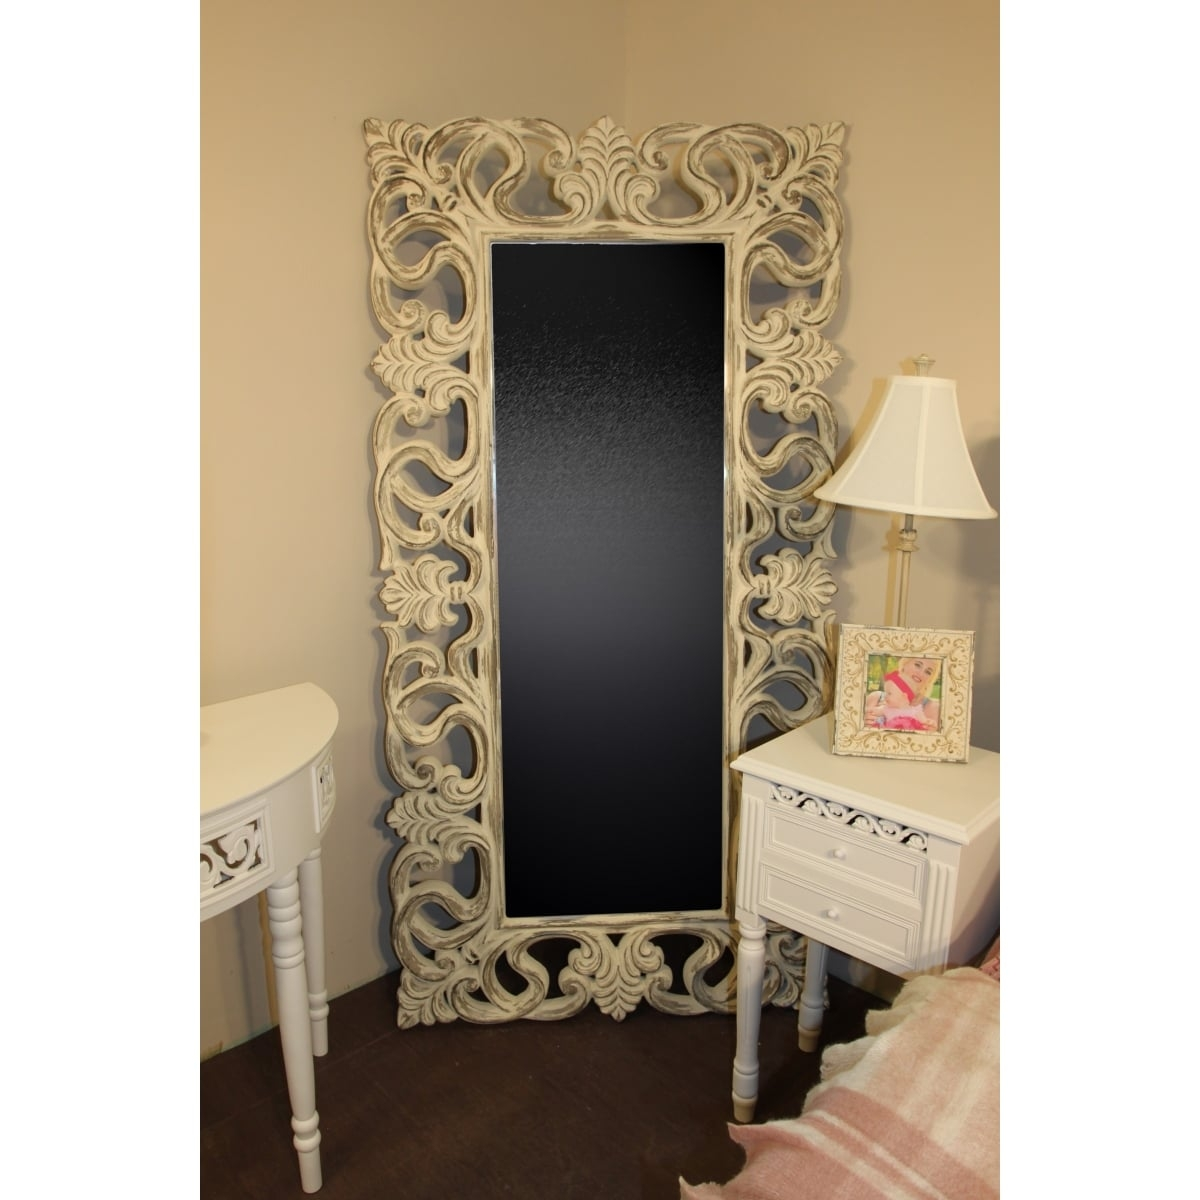 Full Length Mirror Shab Chic Swanky Interiors With Regard To Shabby Chic Full Length Mirror (Image 8 of 15)